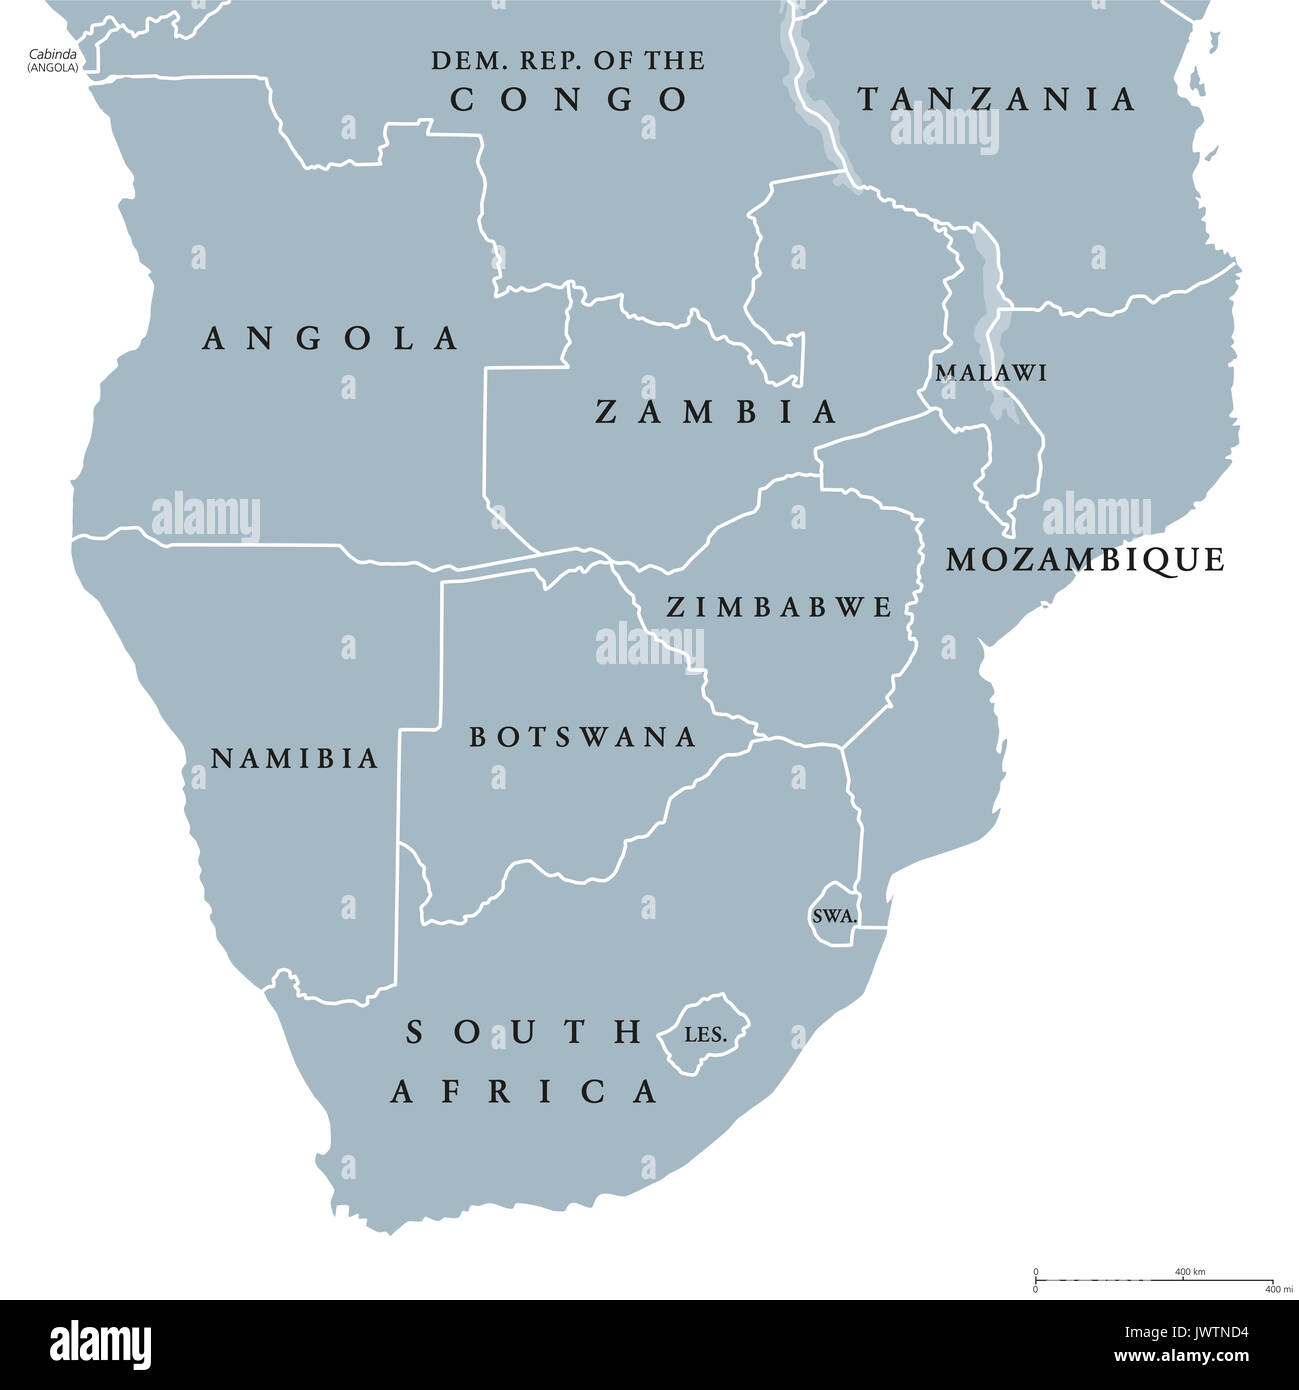 Map Of Africa Political.Southern Africa Political Map With Borders Of The Countries And